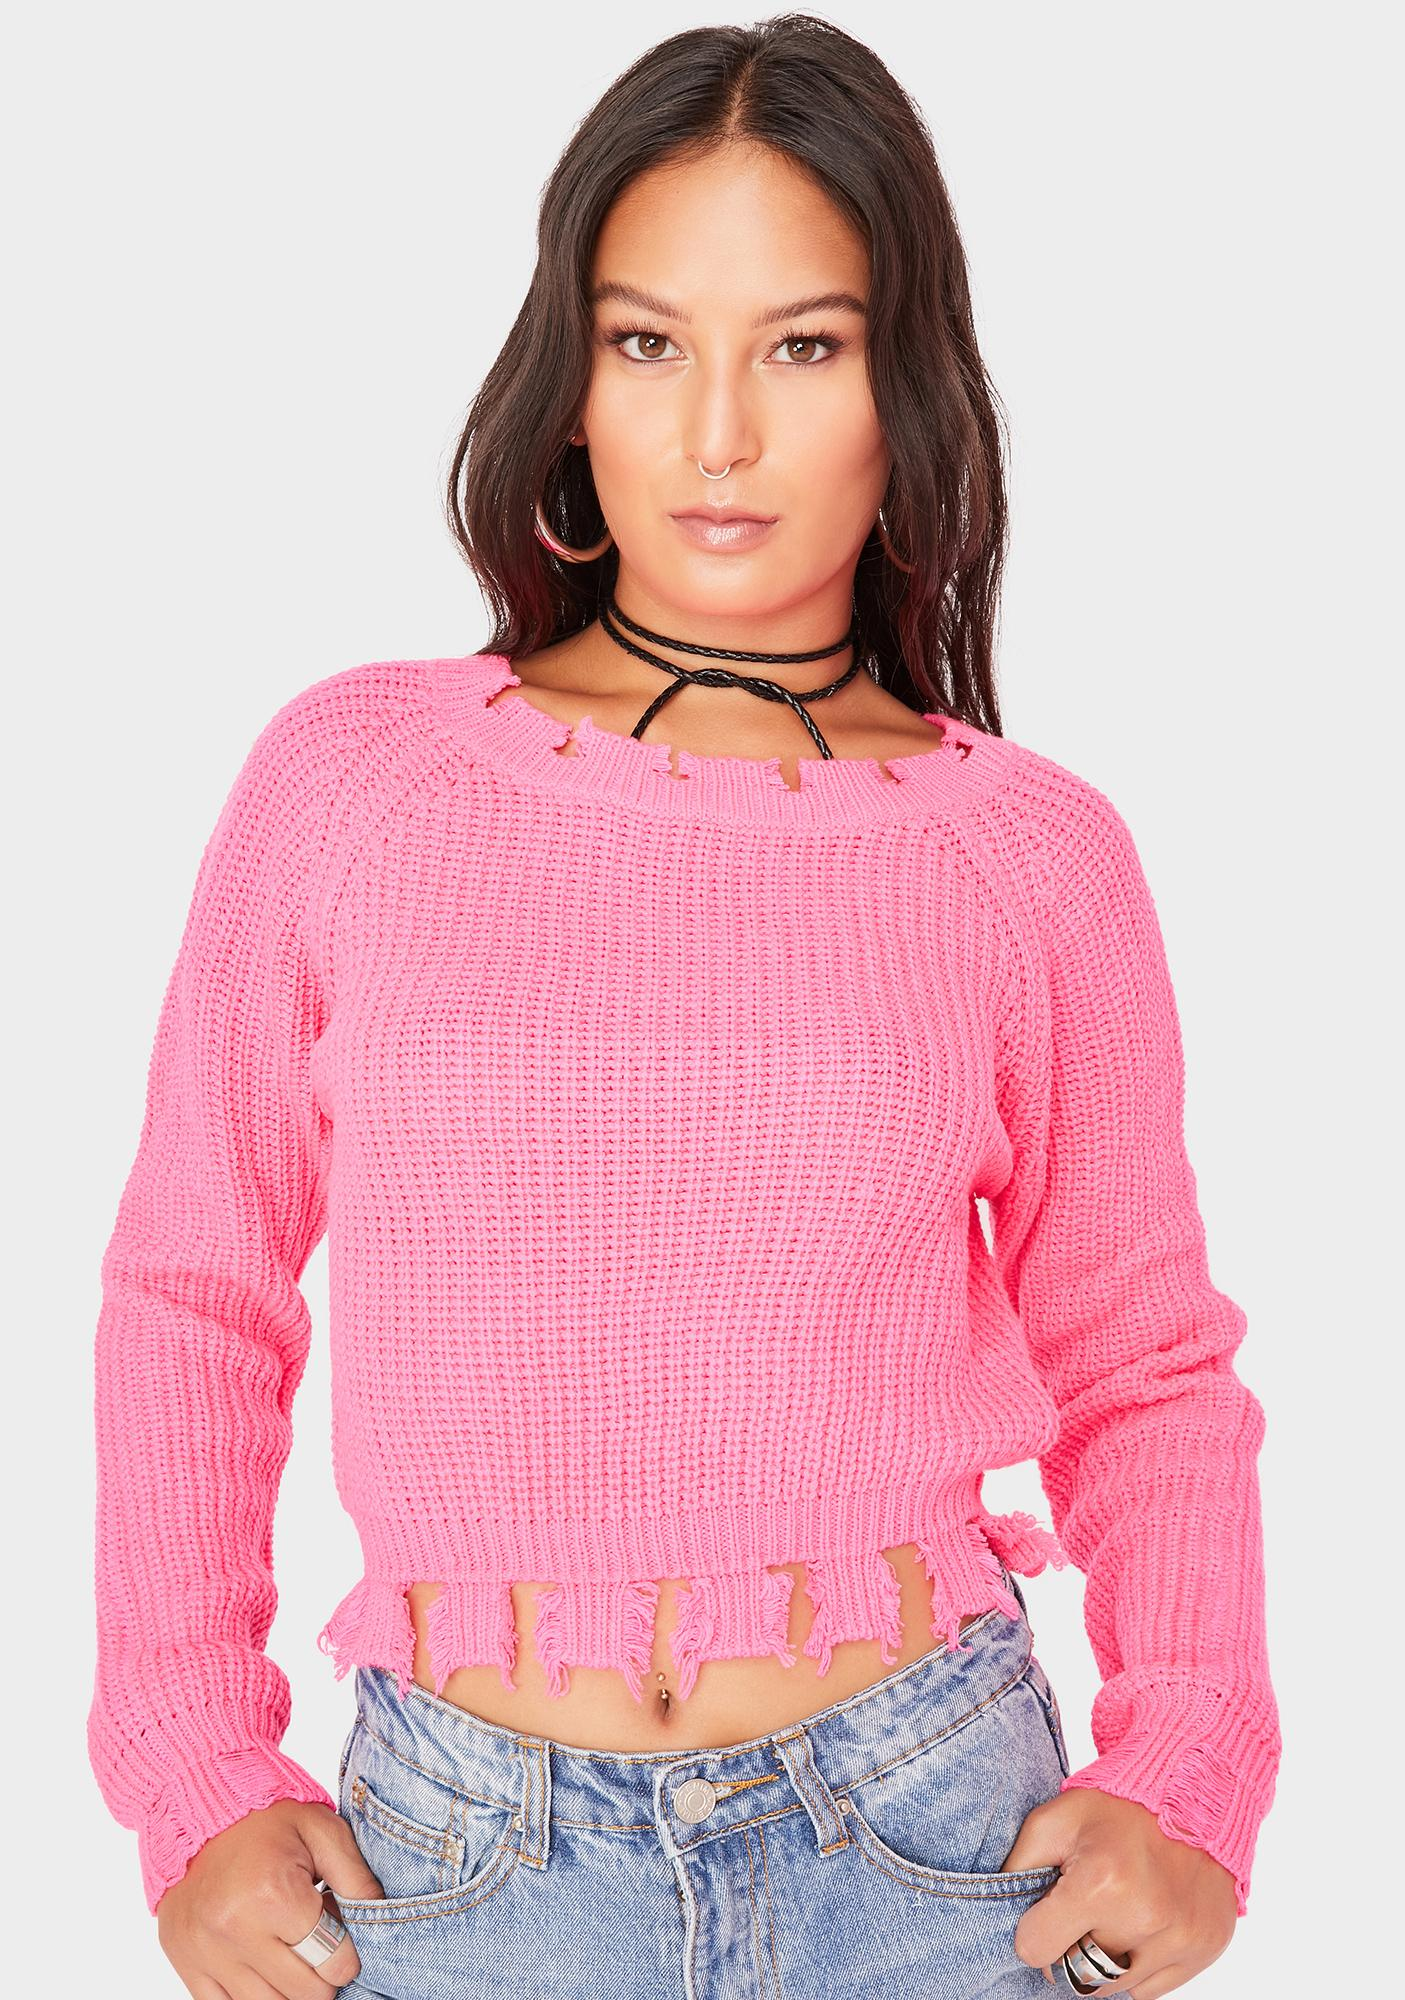 SWNY Pink Cropped Deconstructed Wide Neck Sweater